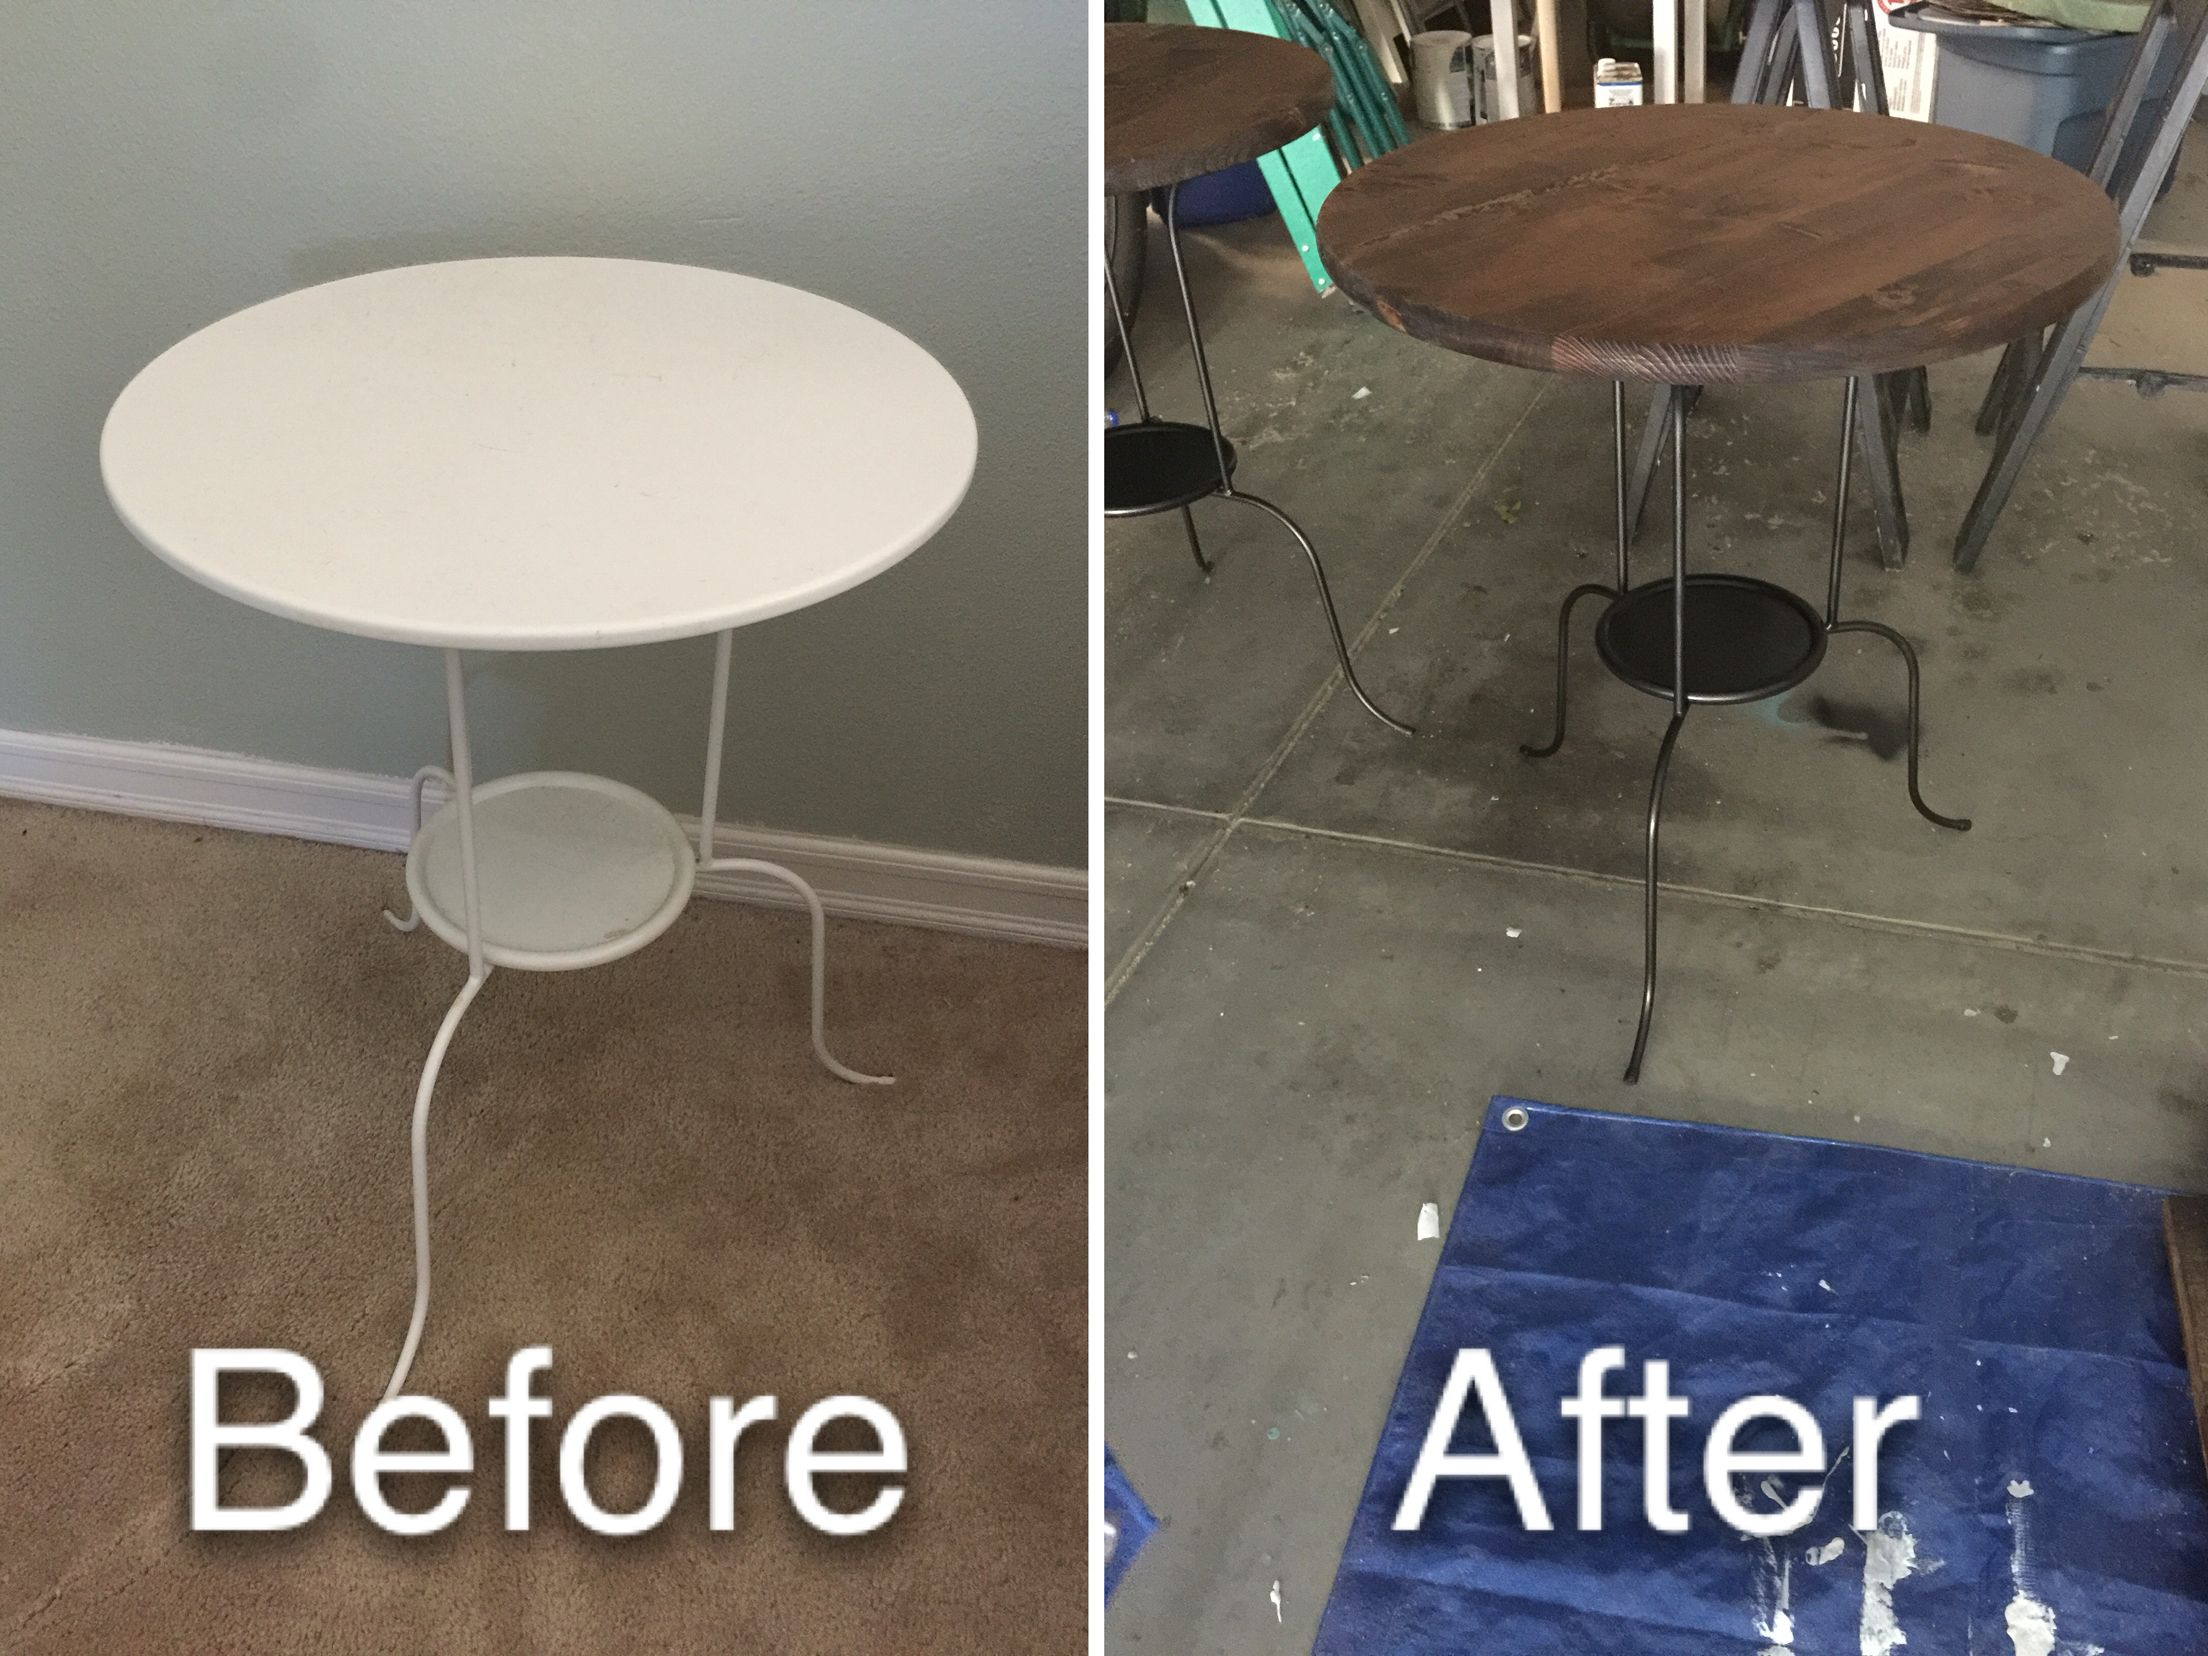 Ikea Lindved Rustic Makeover Oil Rubbed Bronze Spay Paint To The Table And A 23 Inch Round Piece Of Wood Ikea Round Table Furniture Makeover Home Depot Stain [ 1656 x 2208 Pixel ]